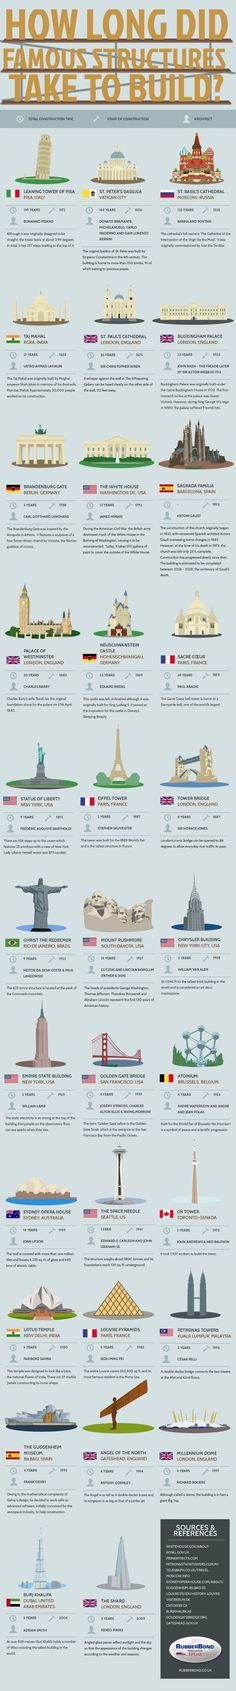 How Long Did Famous Structures Take to Build? INTRIGUING ARCHITECTURE long pin full of information about history of famous buildings across the centuries. #DdO:) - https://www.pinterest.com/DianaDeeOsborne/intriguing-architecture/ - DATES and names of ARCHITECTS included, as well as less known fascinating info some people call #trivia. Pinned via Montbiz.. Source: infografía. Check out that cool T-Shirt here…